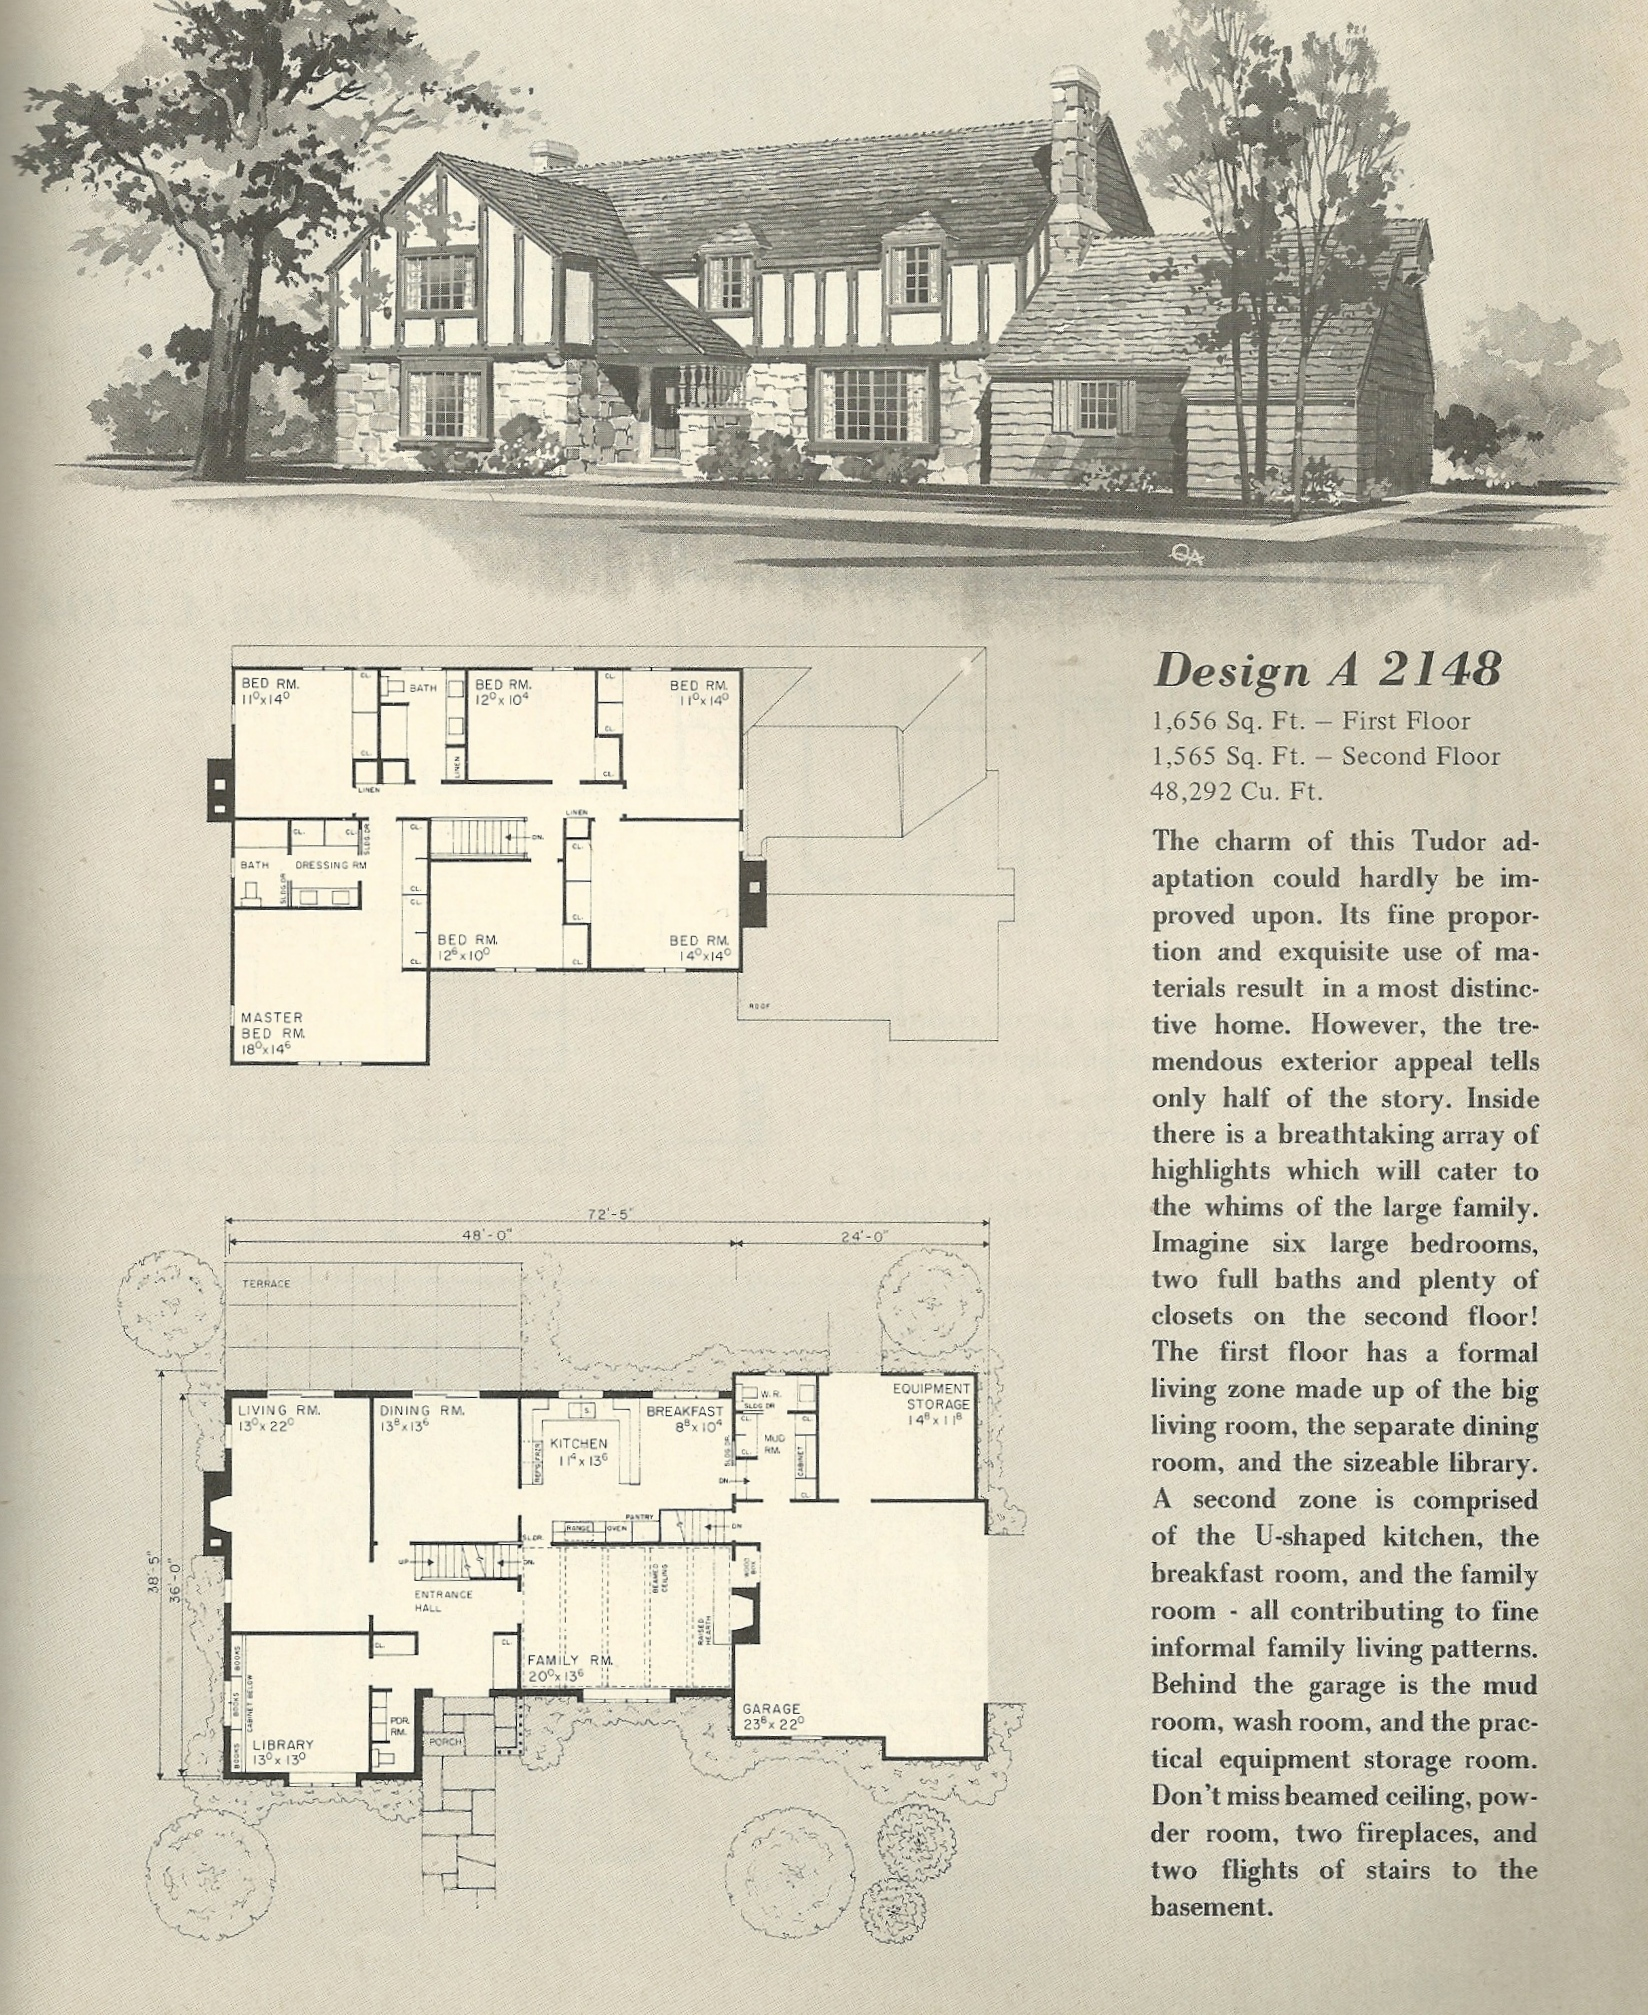 Vintage house plans 2148 antique alter ego for Classic tudor house plans